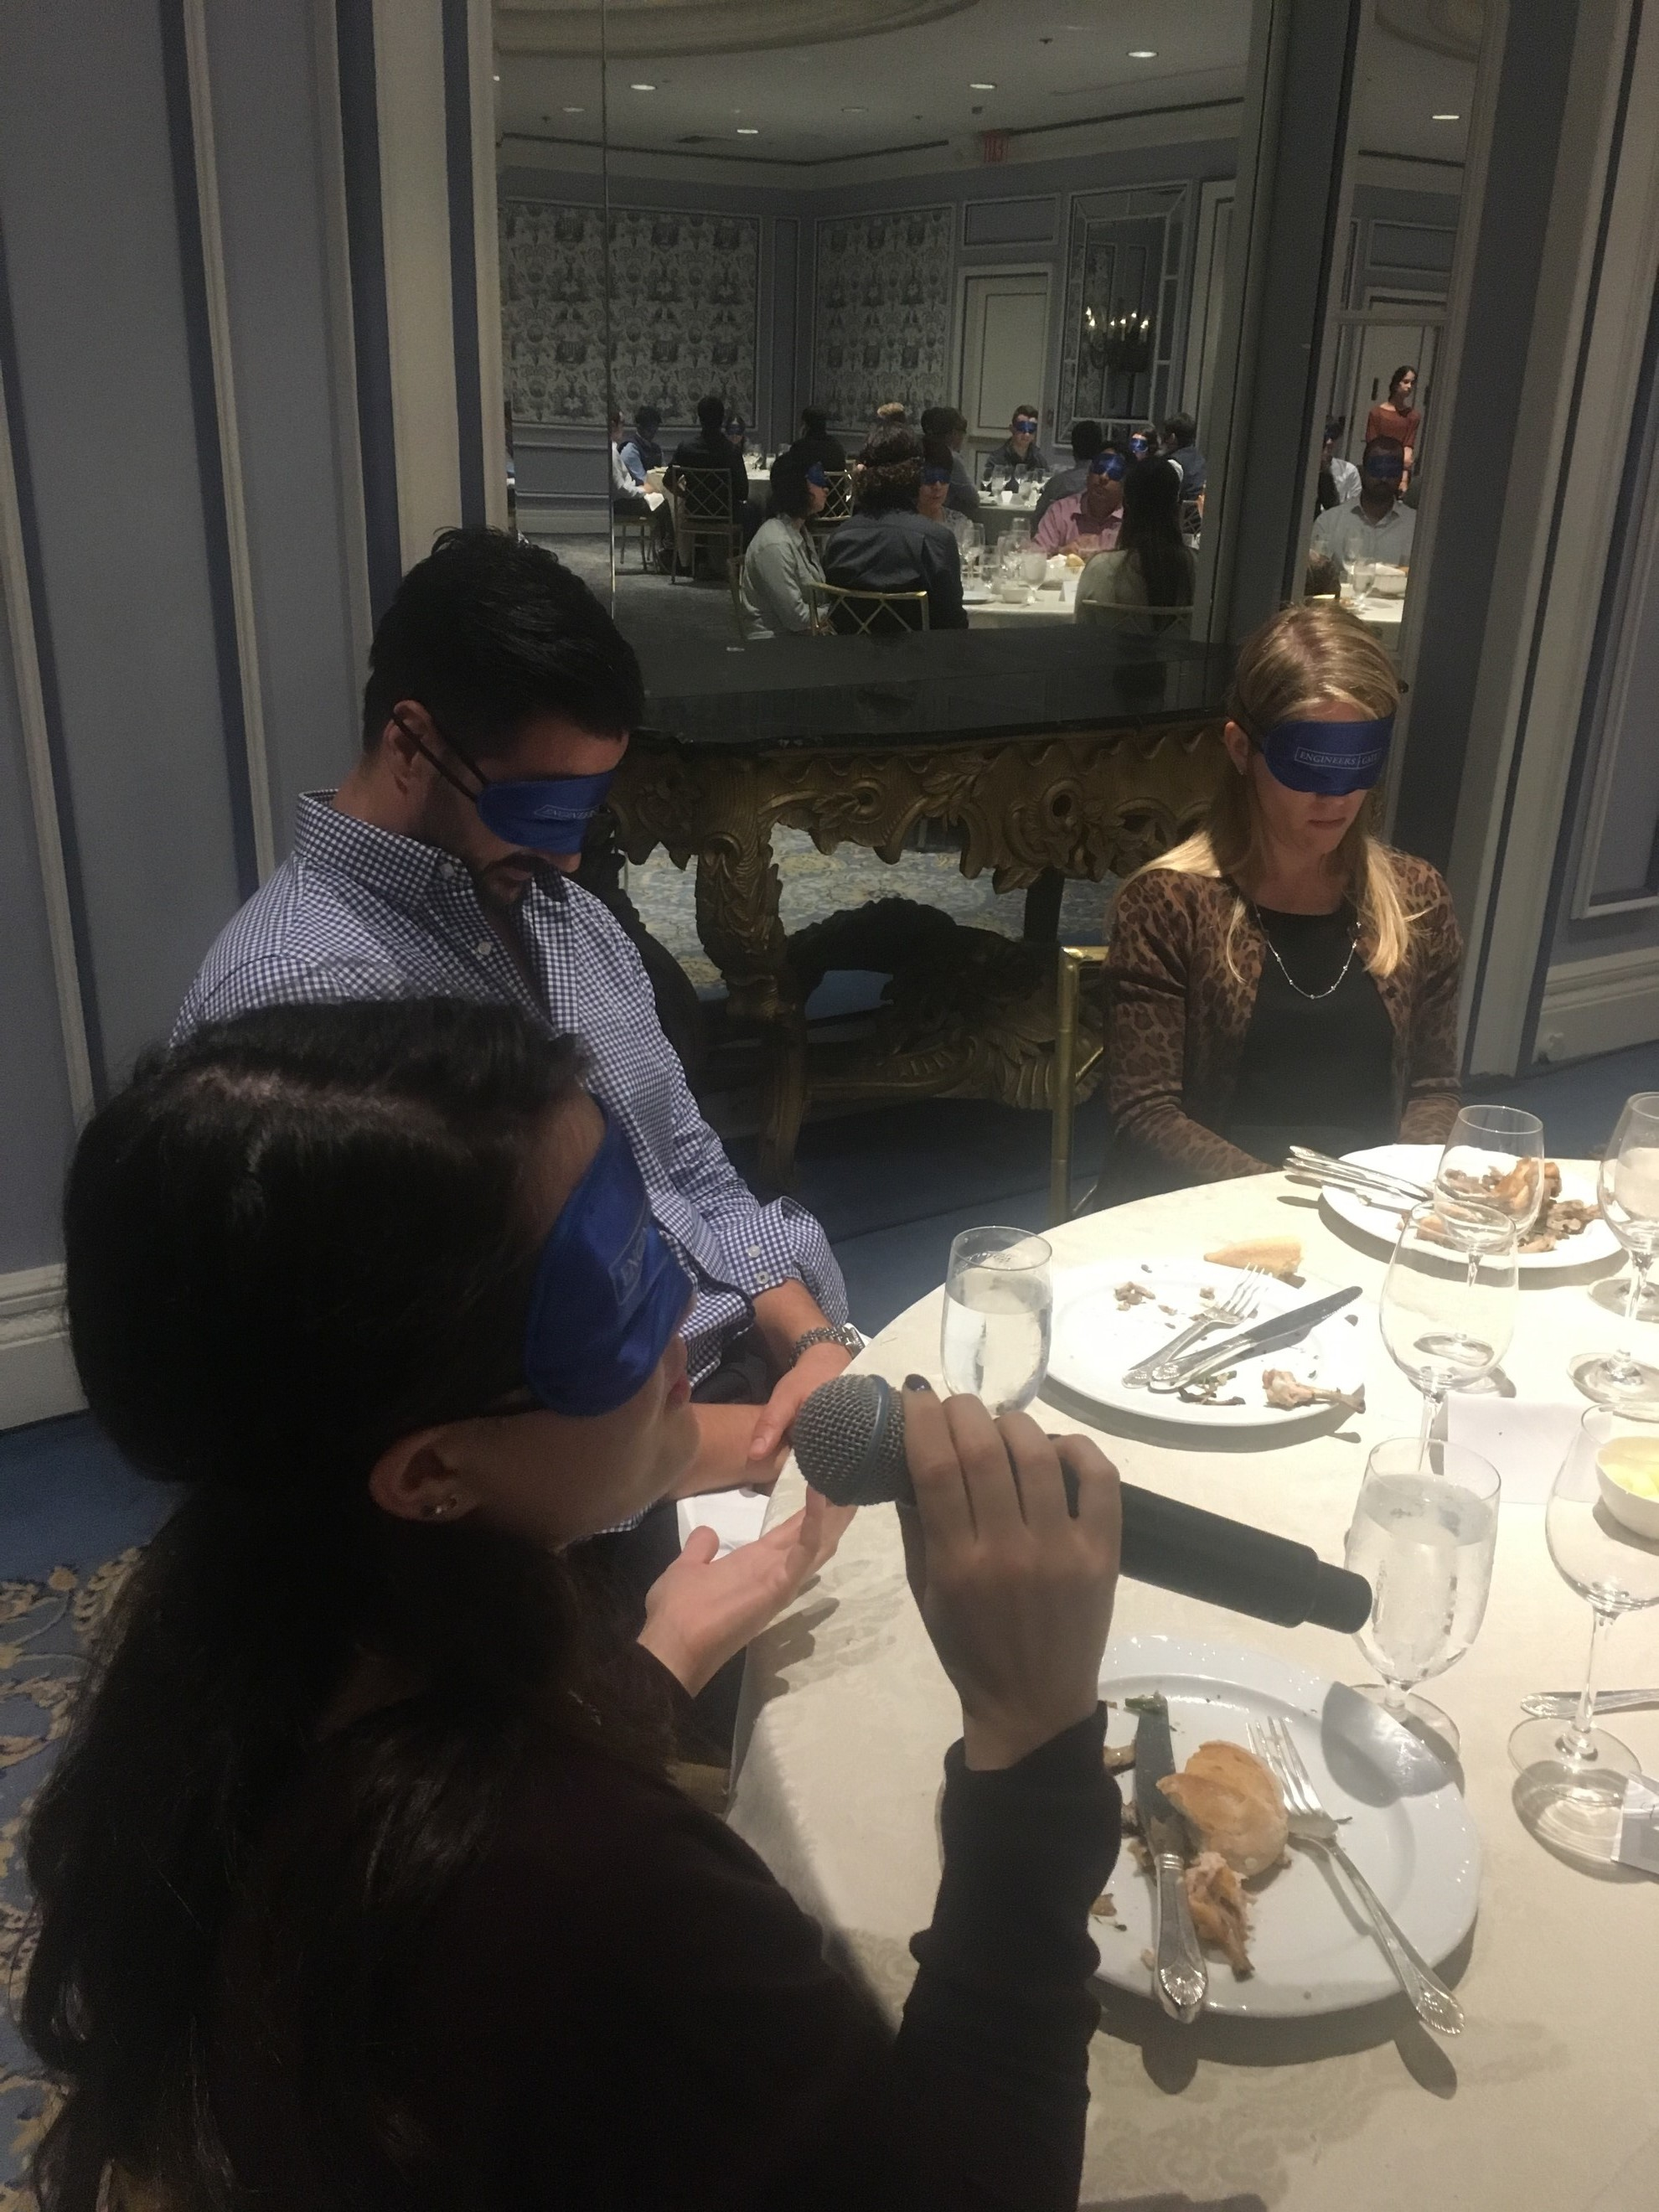 Blindfolded woman sitting at a table answering a question while other blindfolded participants are listening